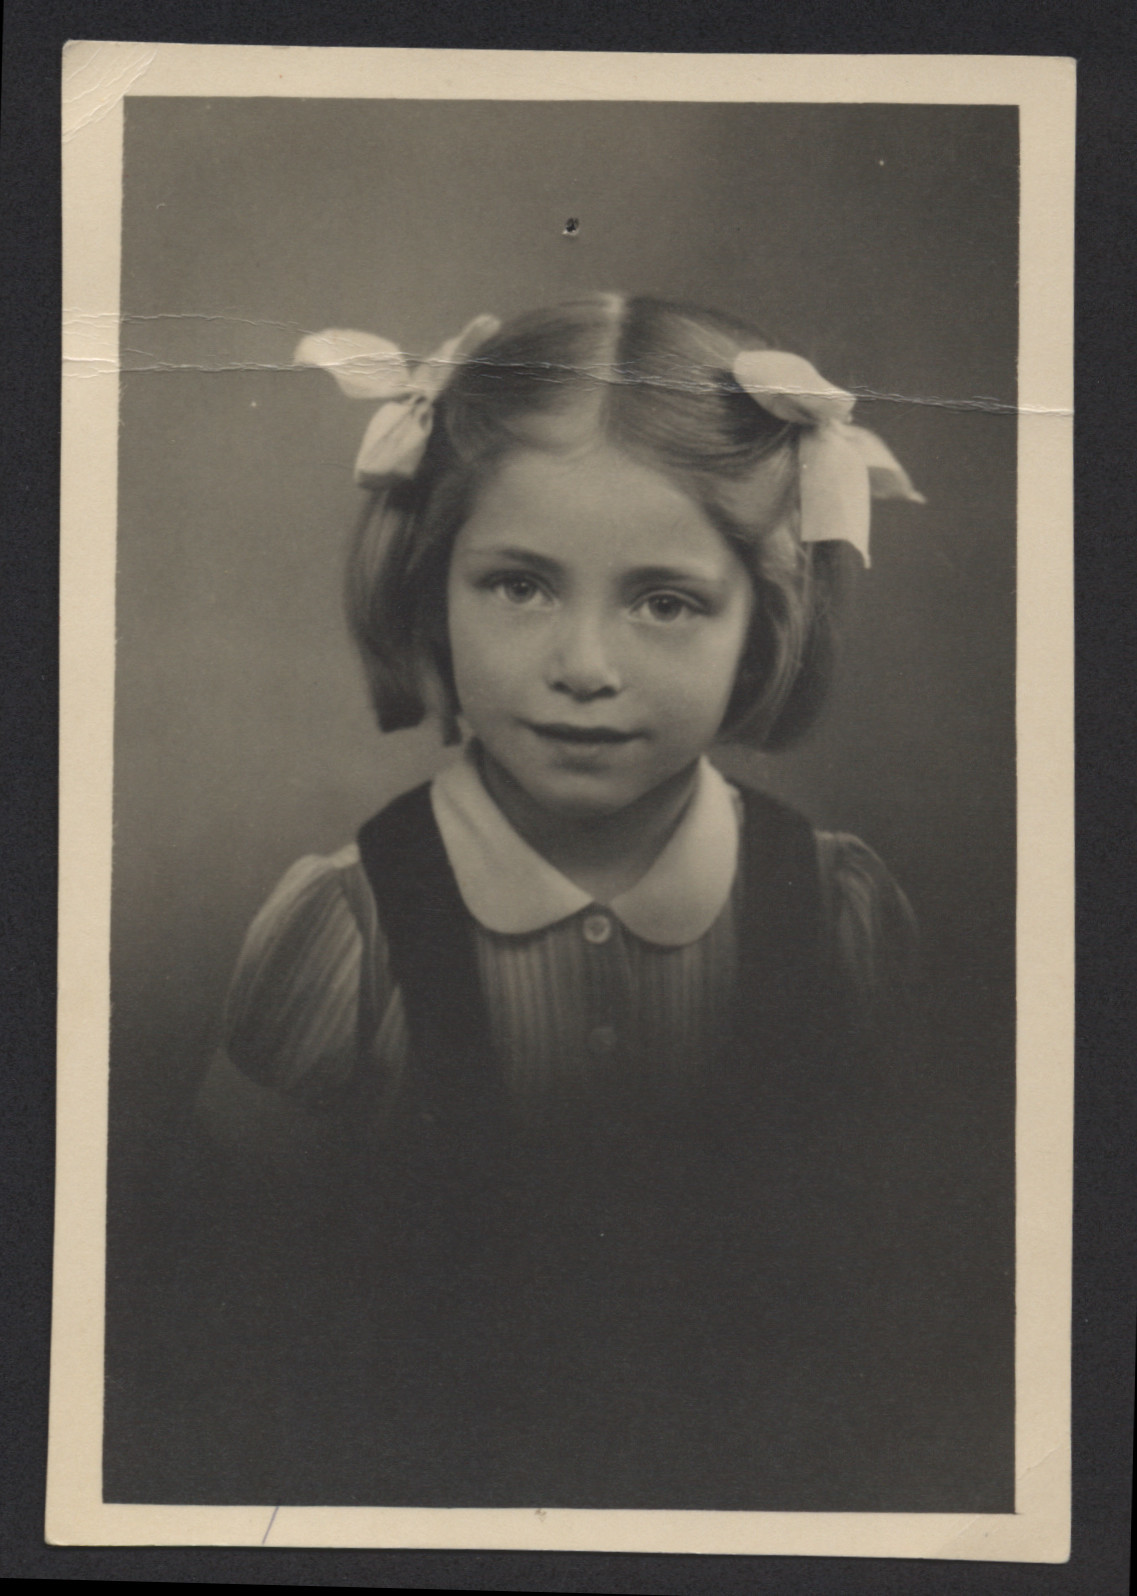 Studio portrait of five-year-old Renee Lyszka taken shortly after the end of the war.